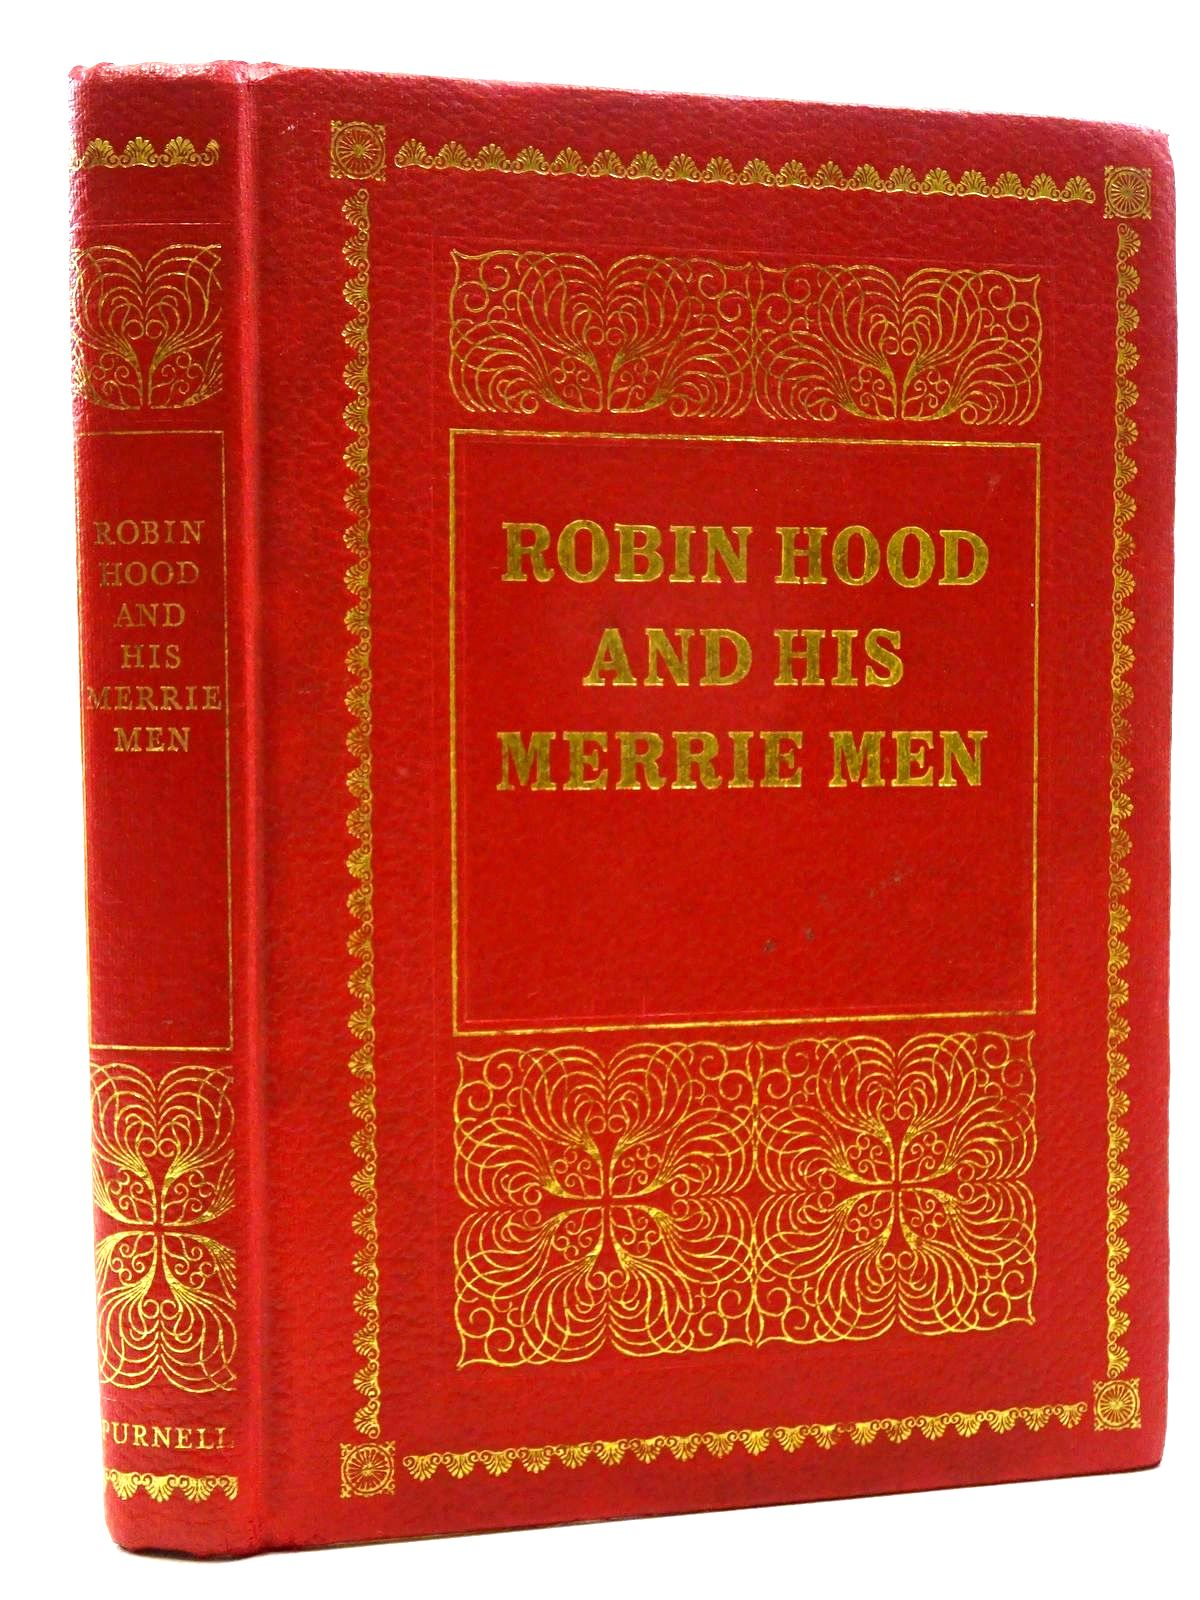 Photo of ROBIN HOOD AND HIS MERRIE MEN illustrated by Bown, Derick published by Purnell (STOCK CODE: 1317365)  for sale by Stella & Rose's Books